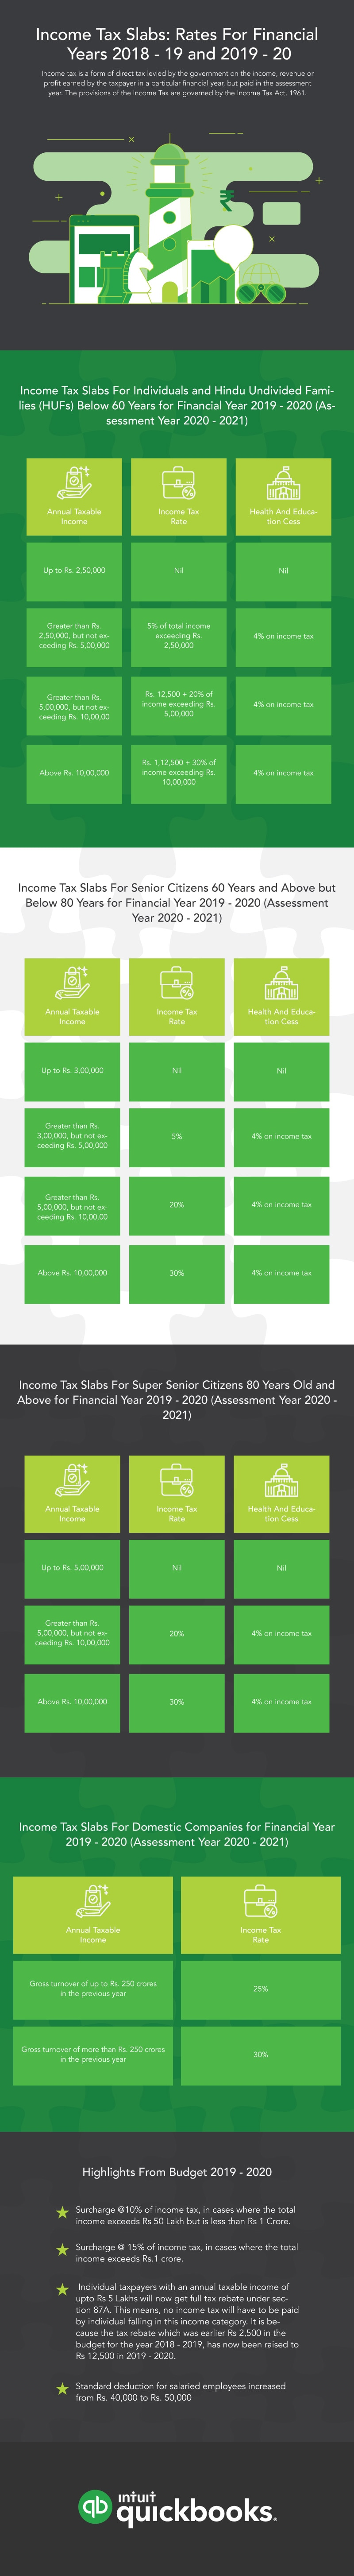 INFOGRAPHIC INCOME TAX SLABS